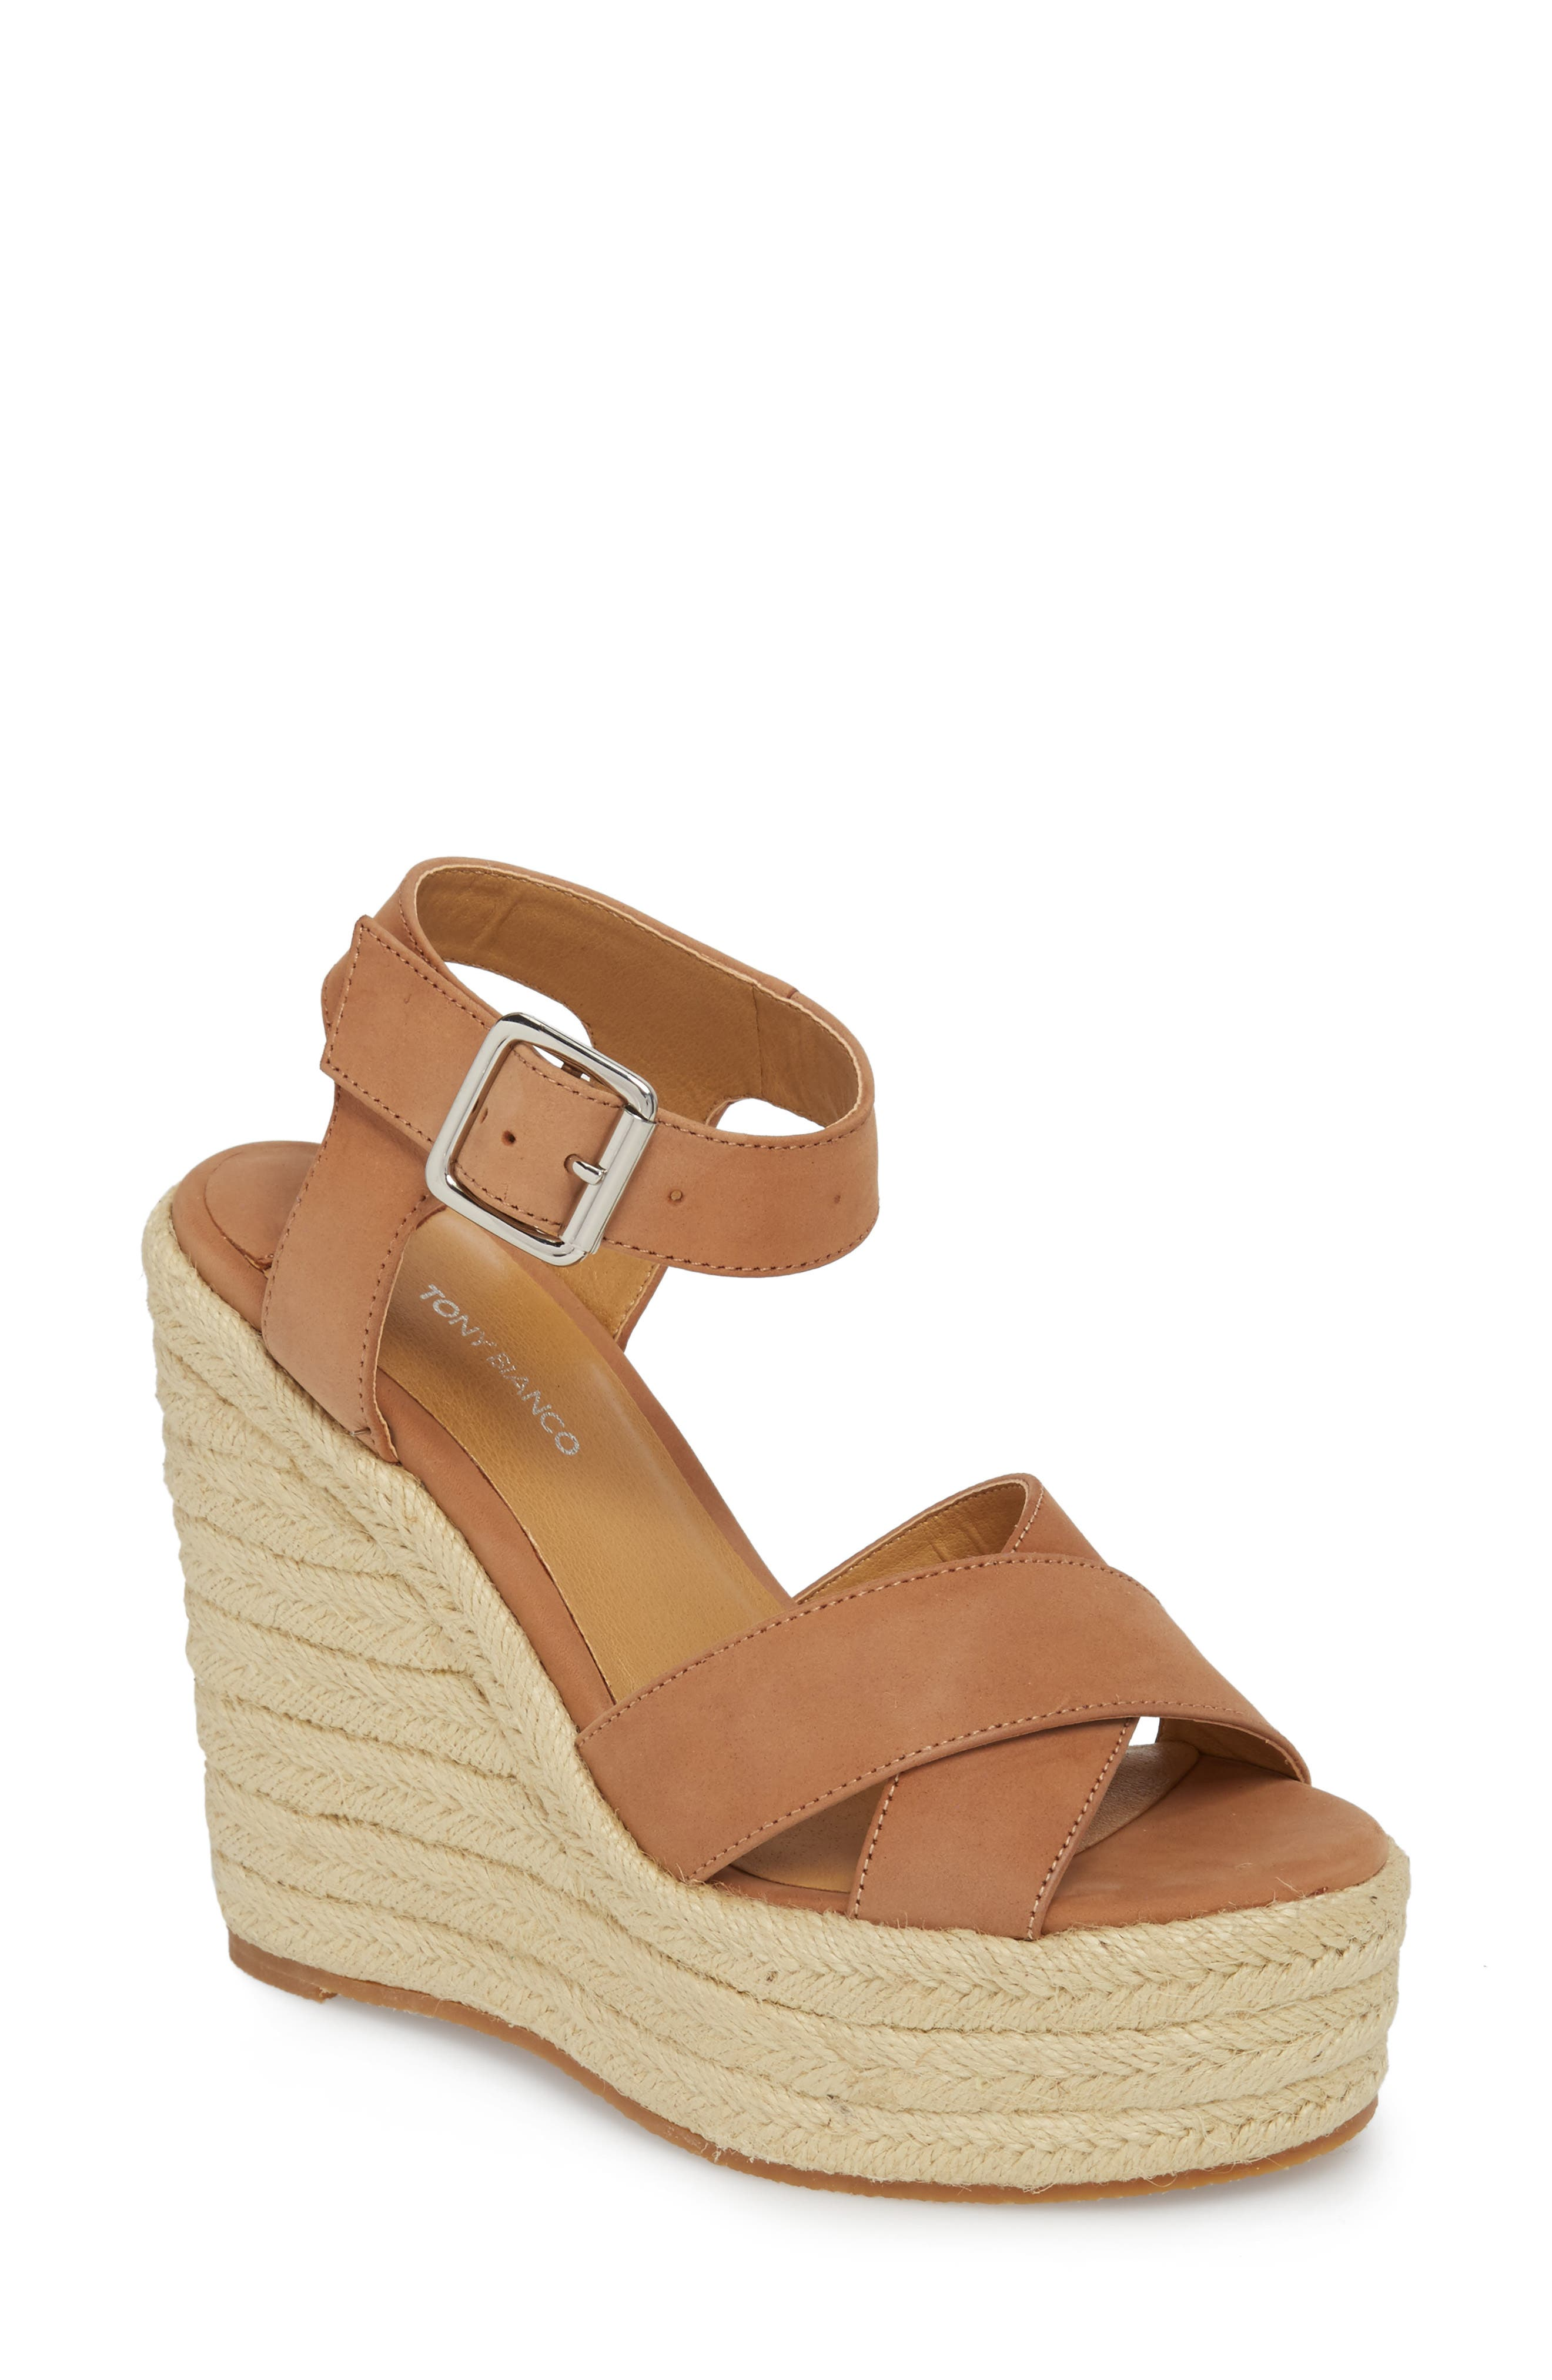 Boston Espadrille Wedge Sandal,                         Main,                         color, CARAMEL PHOENIX LEATHER